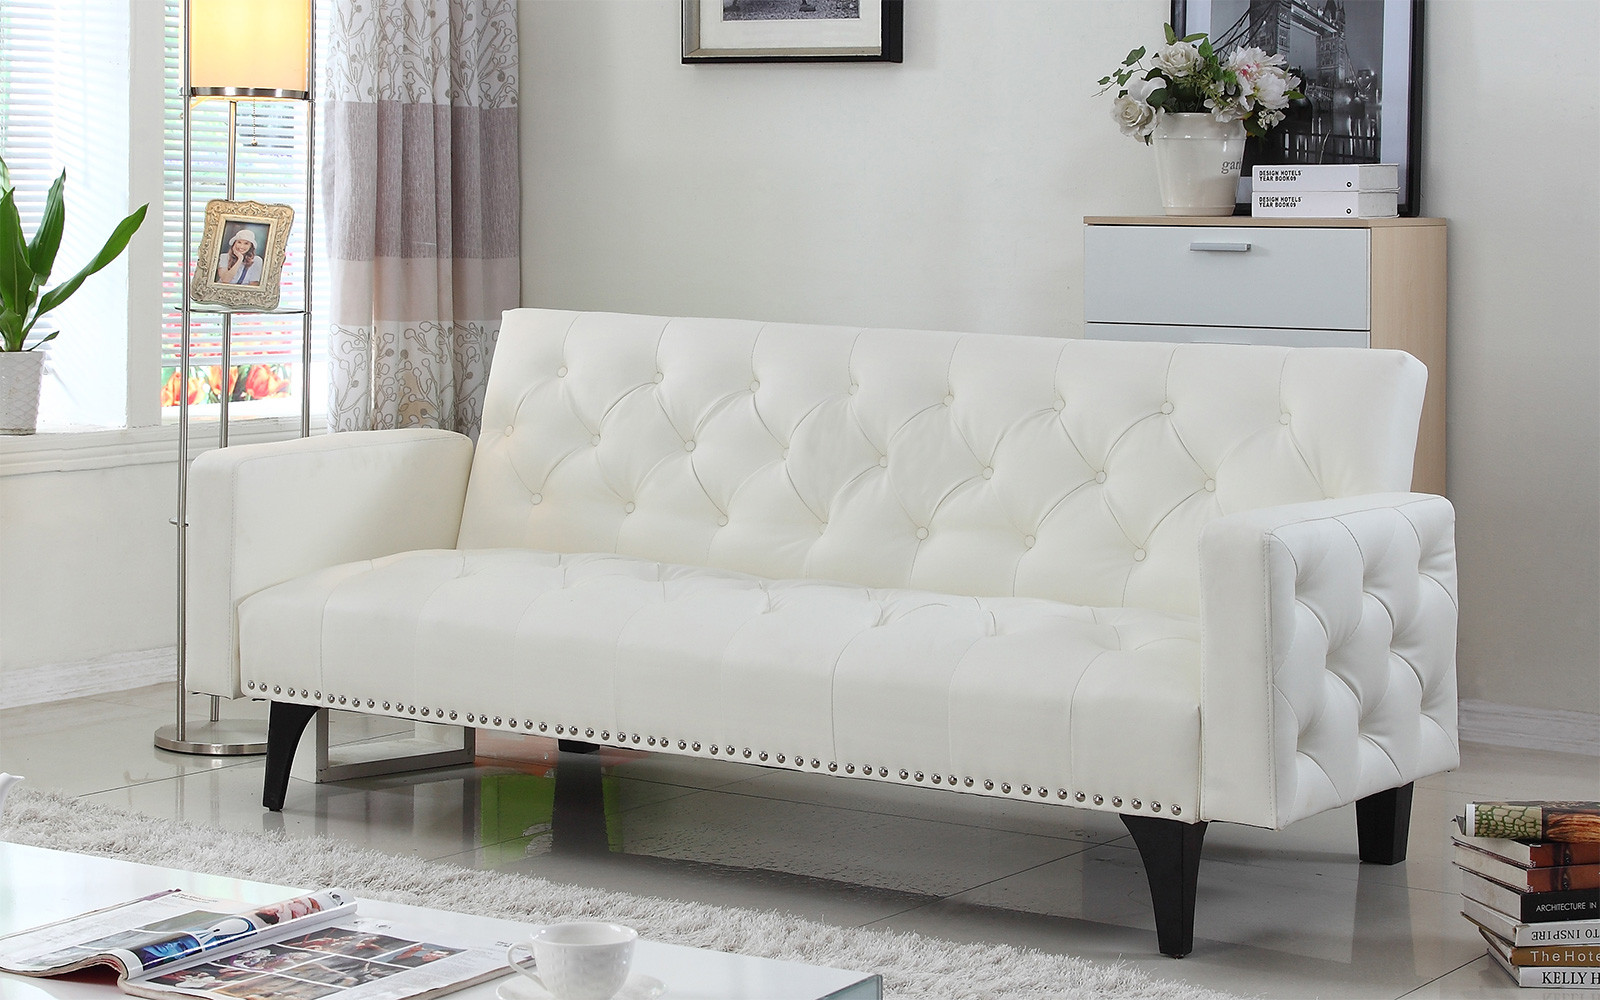 Marvelous Modern Tufted Bonded Leather Sleeper Futon Sofa With Nailhead Trim    Walmart.com